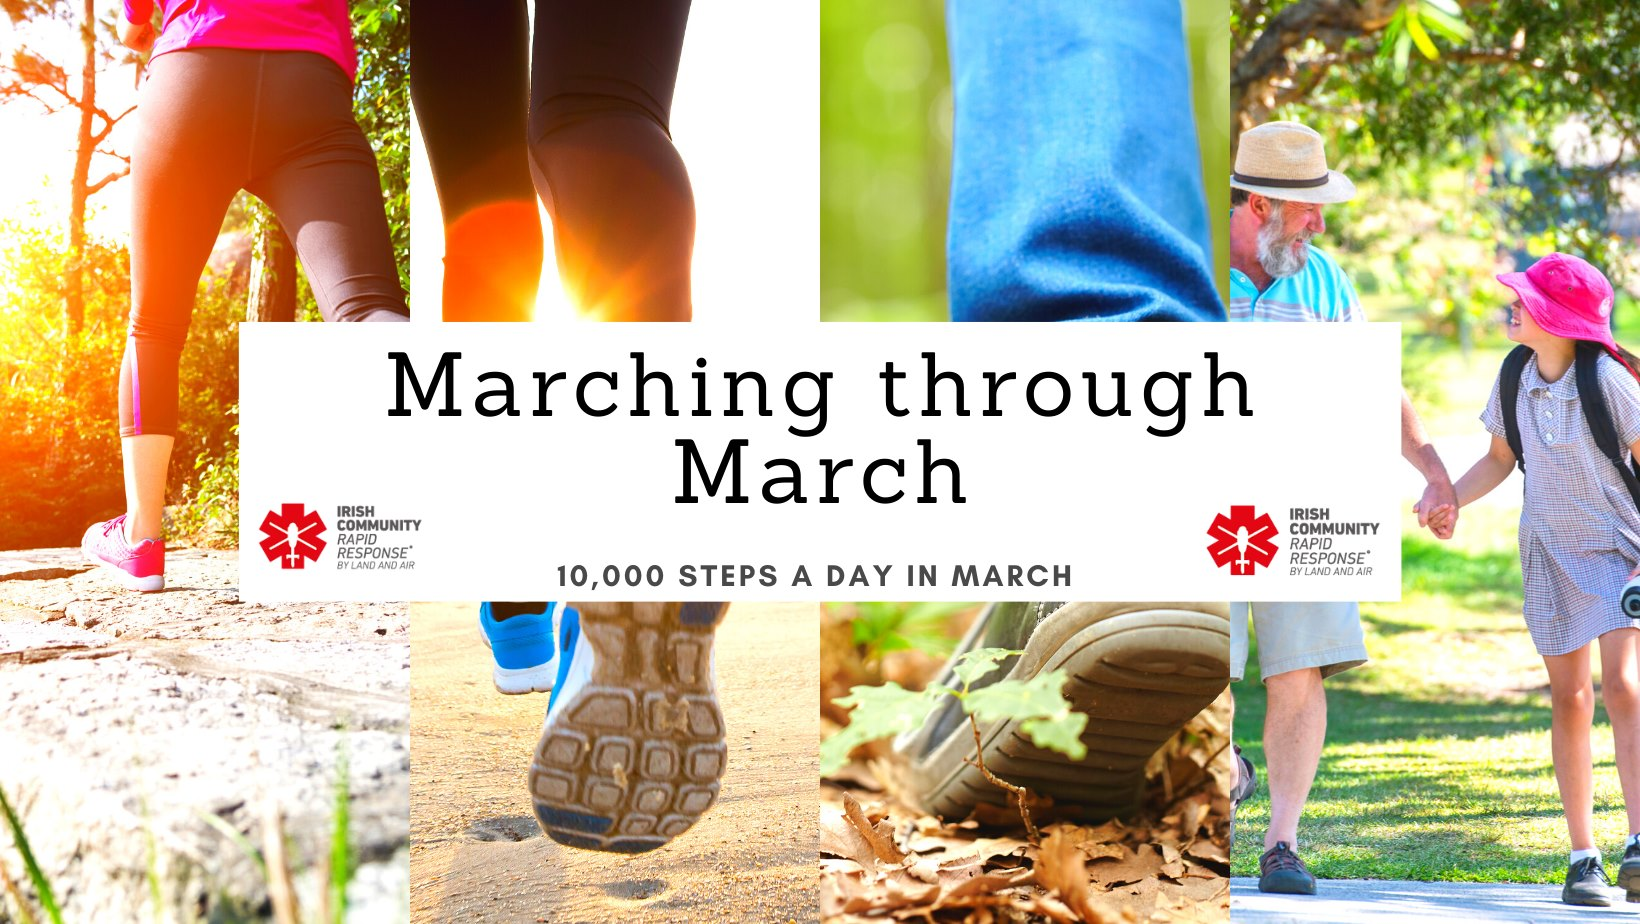 Marching through March - 10,000 steps a day for March